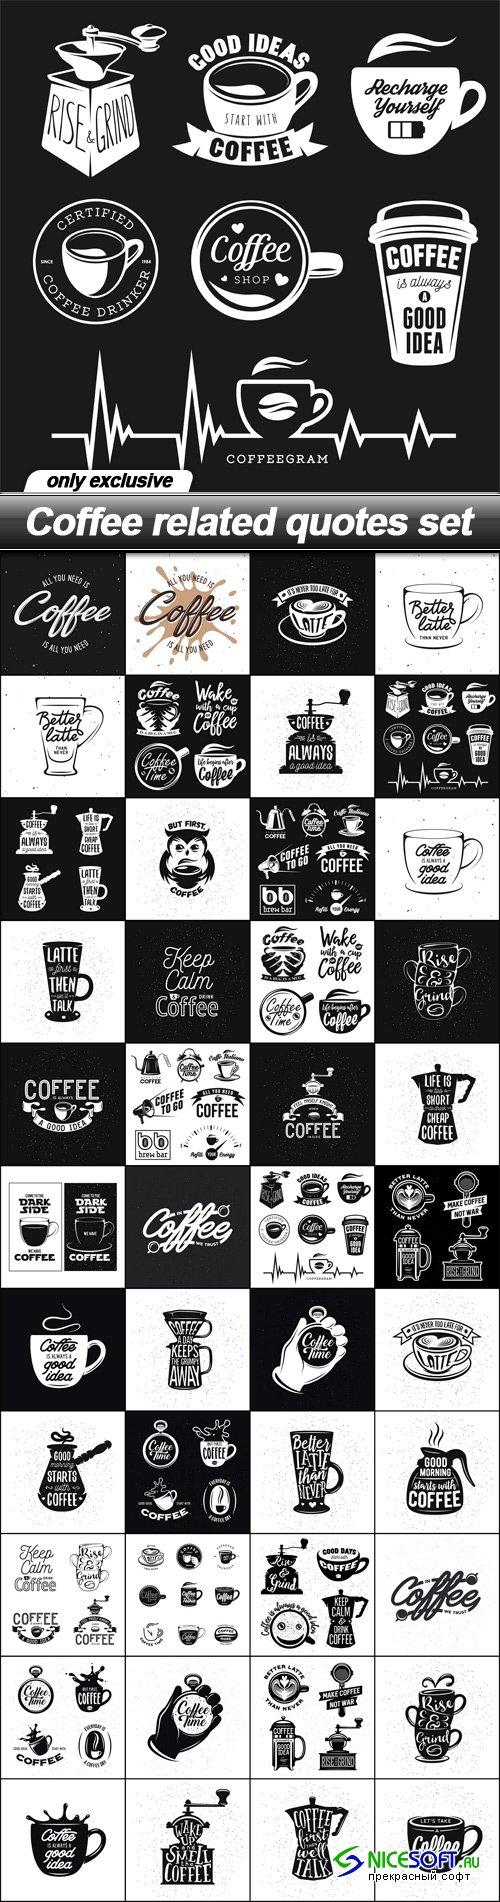 Coffee related quotes set